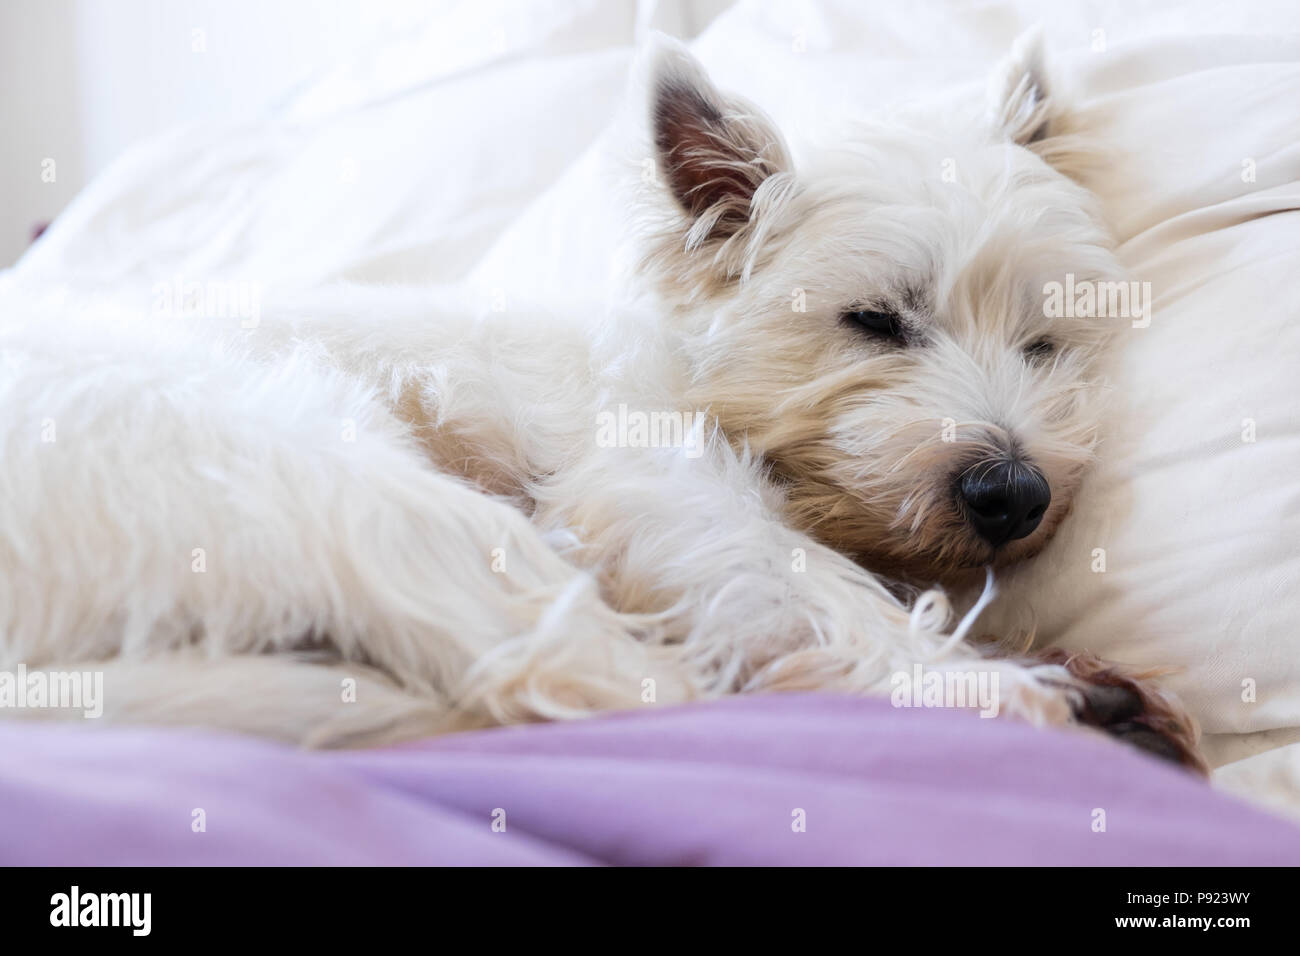 Pet friendly accommodation: west highland white terrier westie dog asleep on pillows and duvet on bed - Stock Image